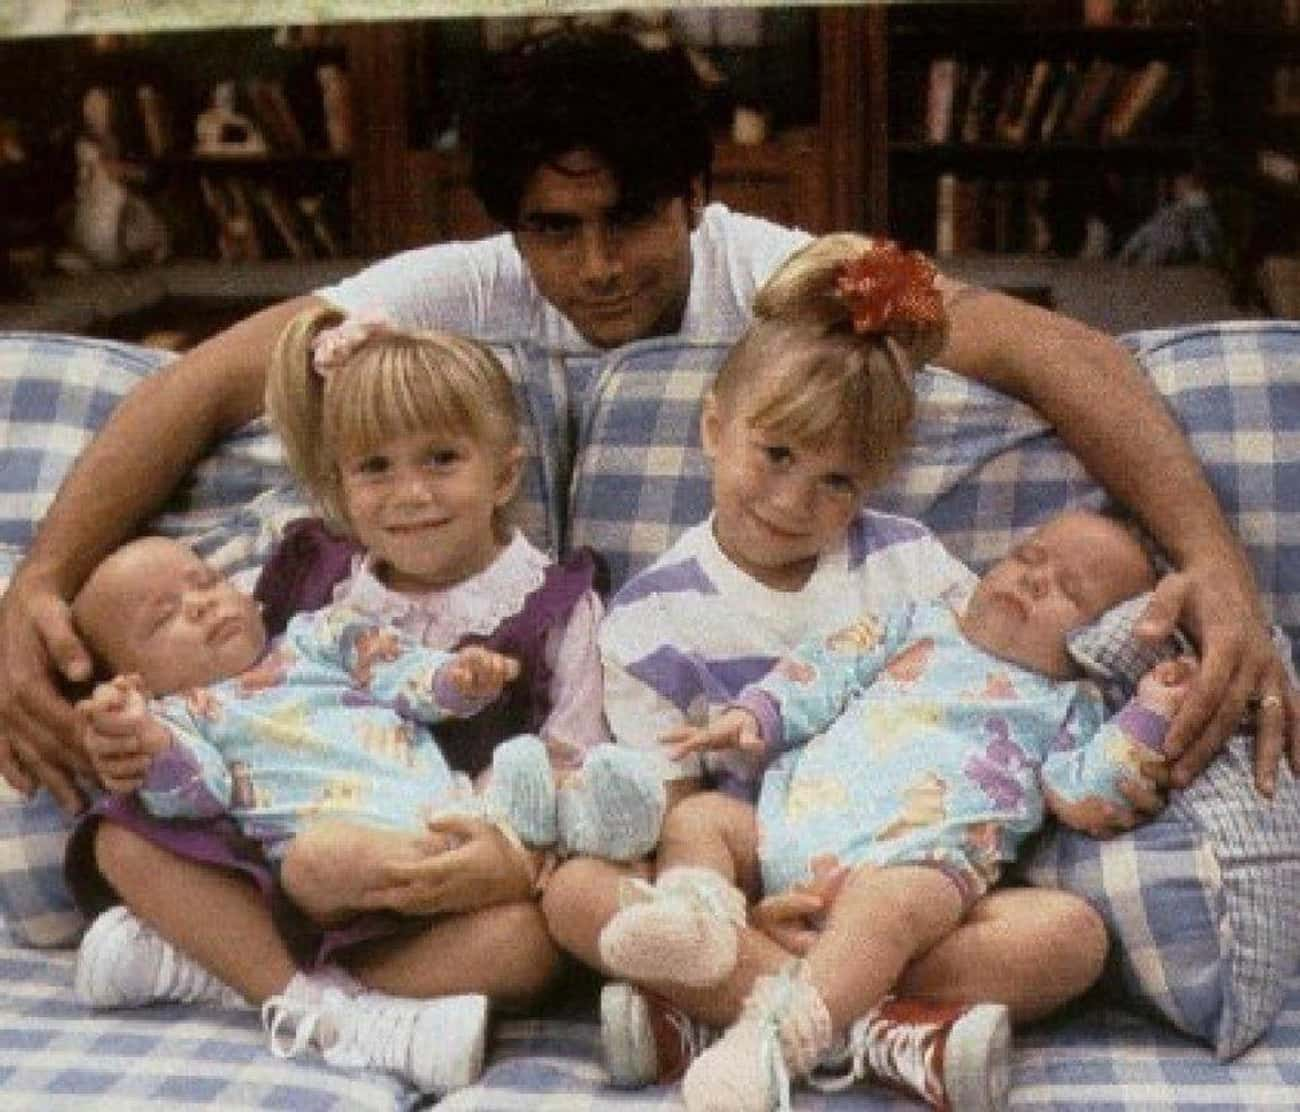 John Stamos Fought to Keep Bot is listed (or ranked) 1 on the list 28 Behind the Scenes Facts from Full House